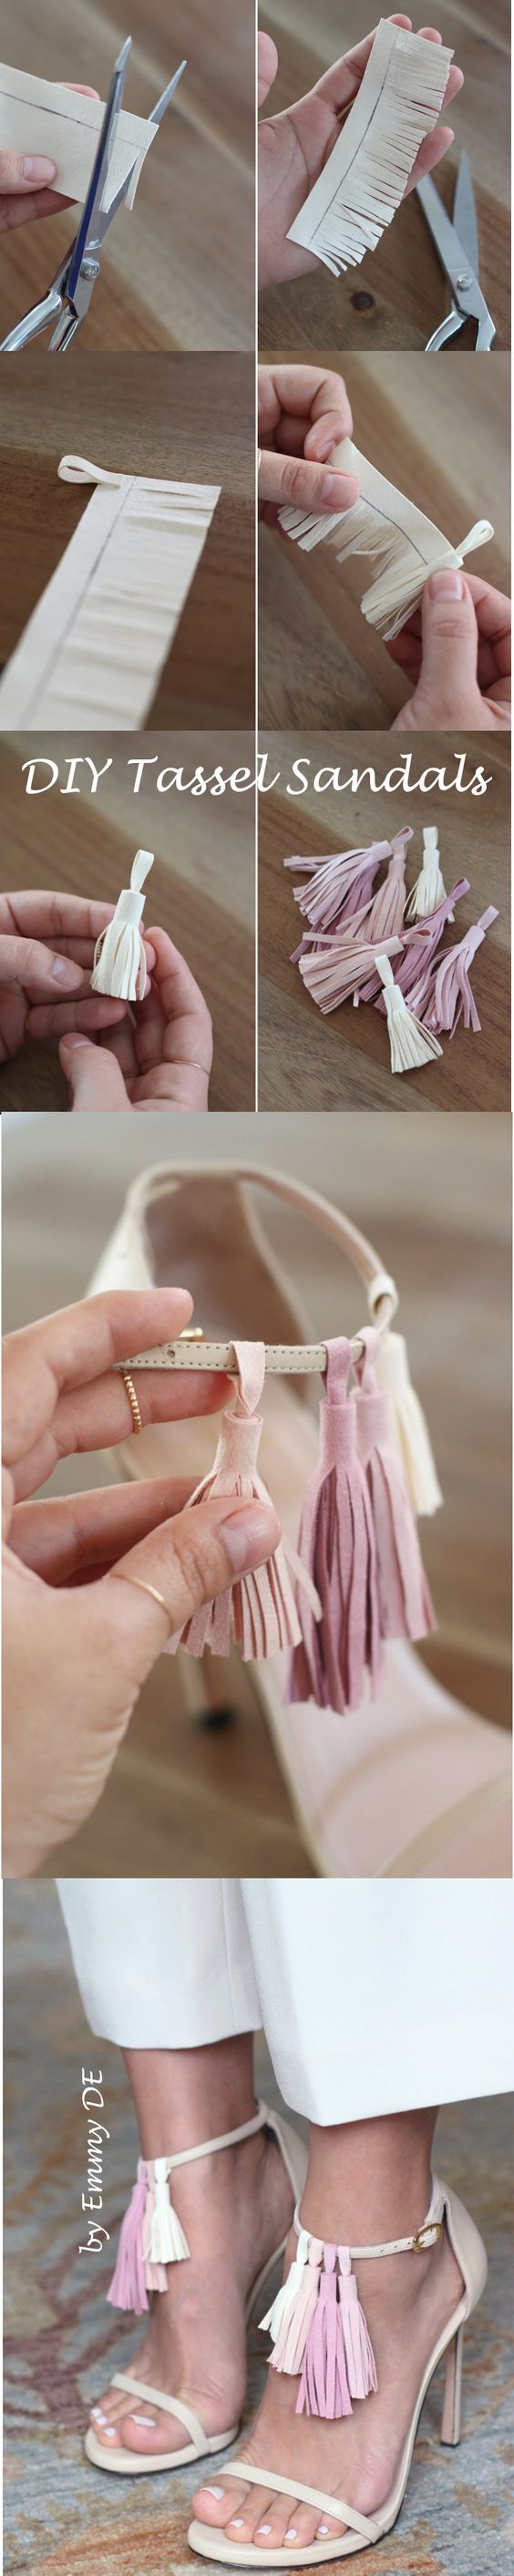 Emmy DE * DIY Tassel Sandals ~ You'll need: strappy sandals (here Stewart Weitzman Nudist ), 8 pieces of 5×5 ultra suede fabric (2 of each color), fabric glue, fabric shears, ruler, pen (images by HonestlyWTF):